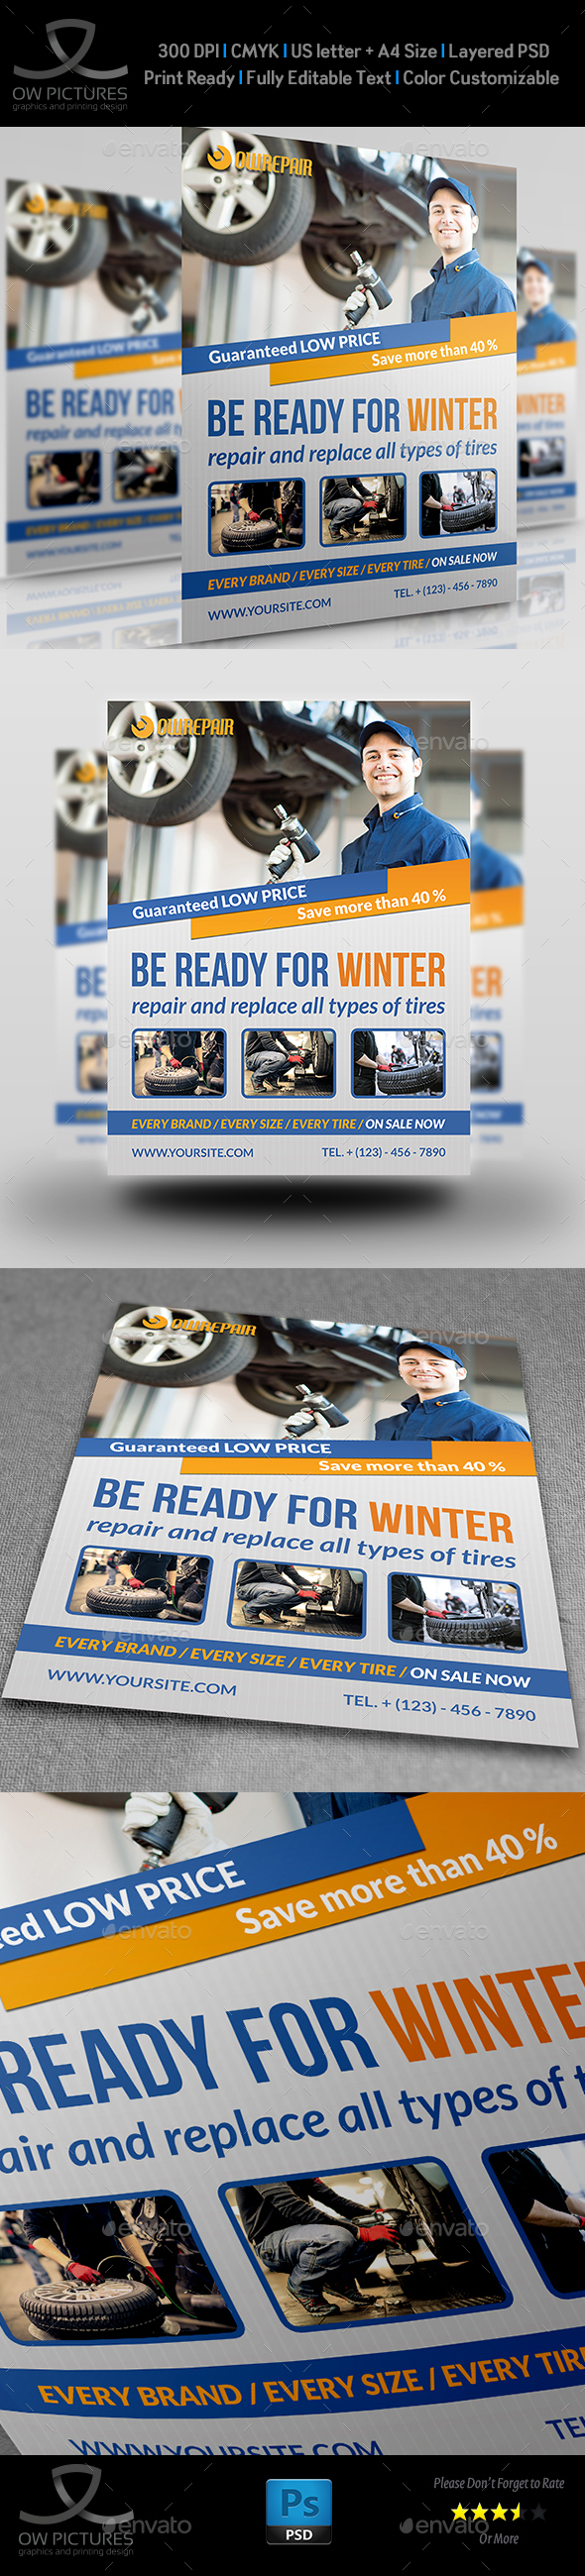 Tires Services Flyer Template - Flyers Print Templates